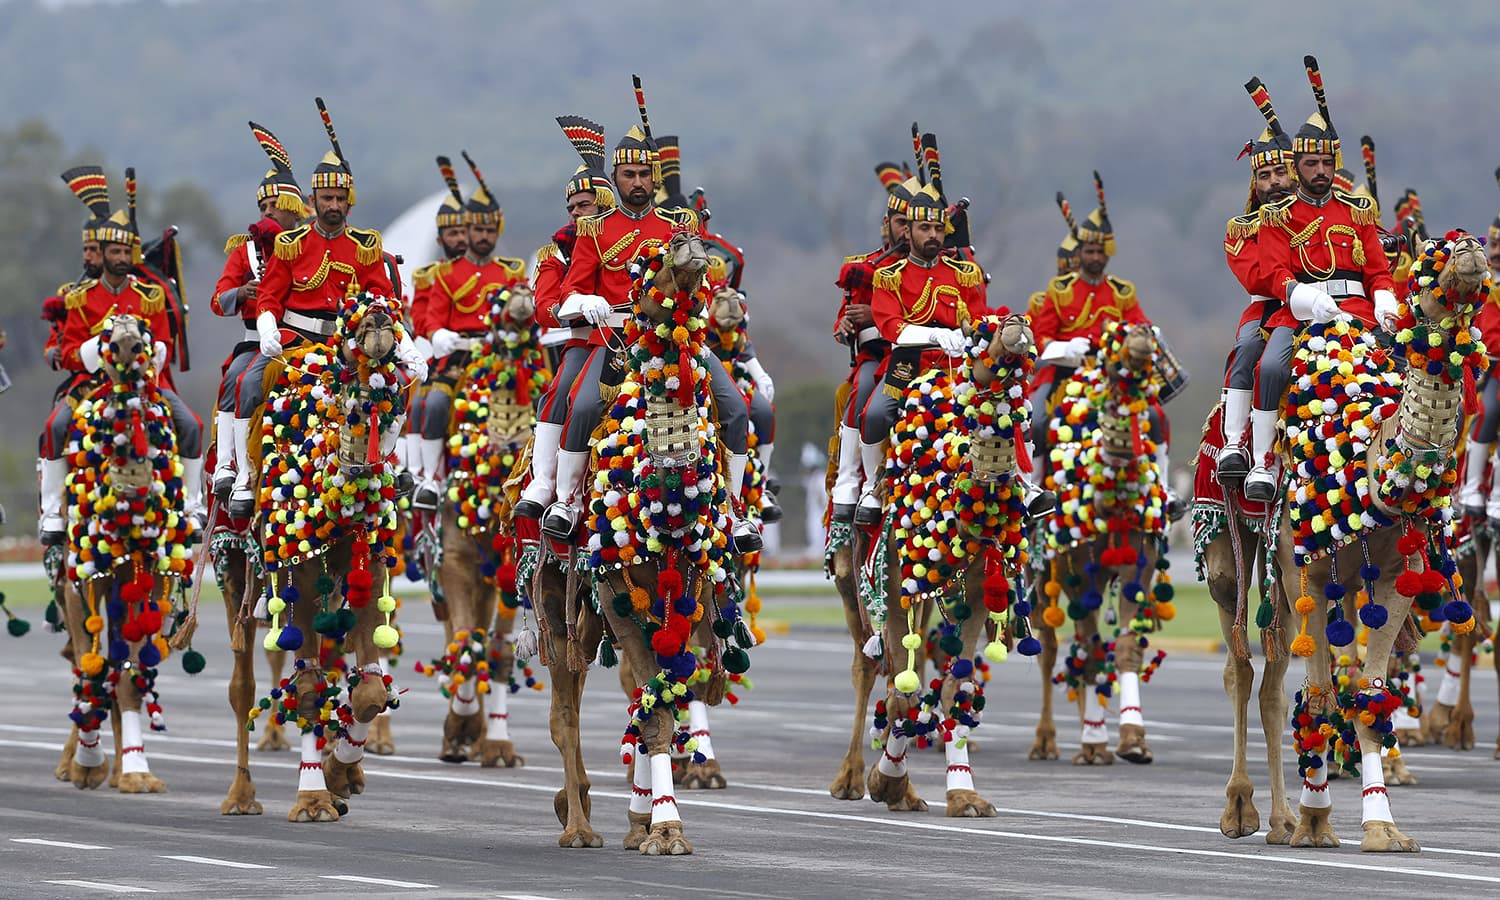 The Pakistan Army musical band on camelback during a military parade to mark Pakistan Day. ─ AP